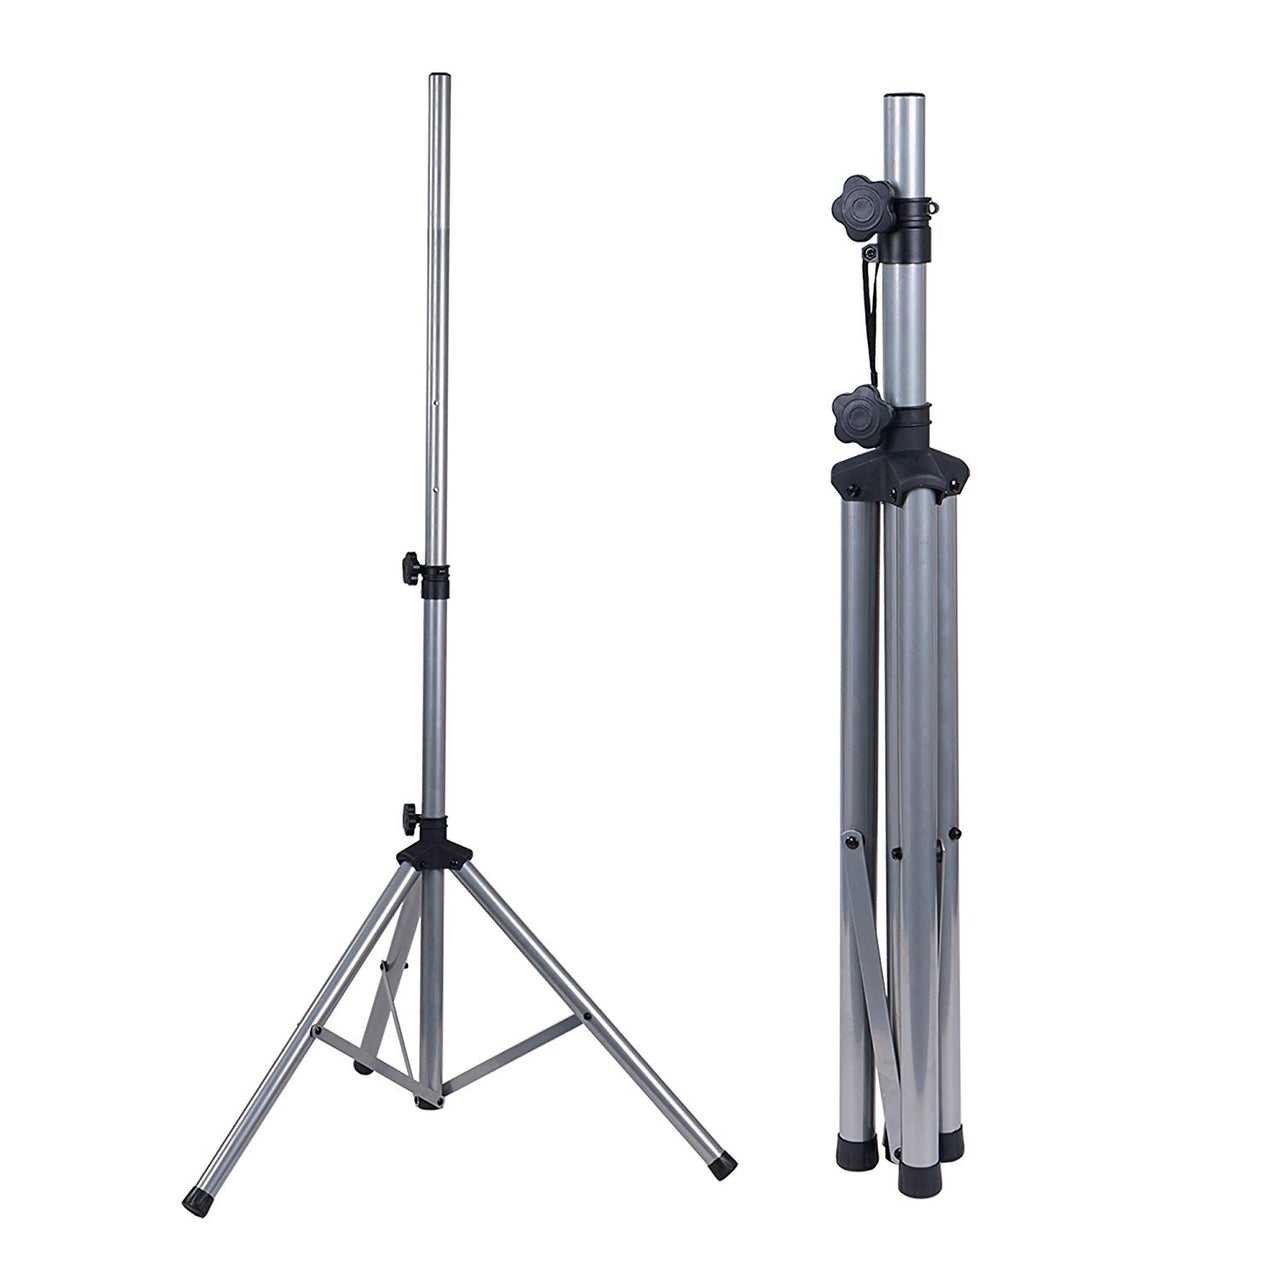 Universal Tripod Speaker Stand with Adjustable Height, 35mm Compatible Insert, Locking Knob and Shaft Pin (STSD-71W)